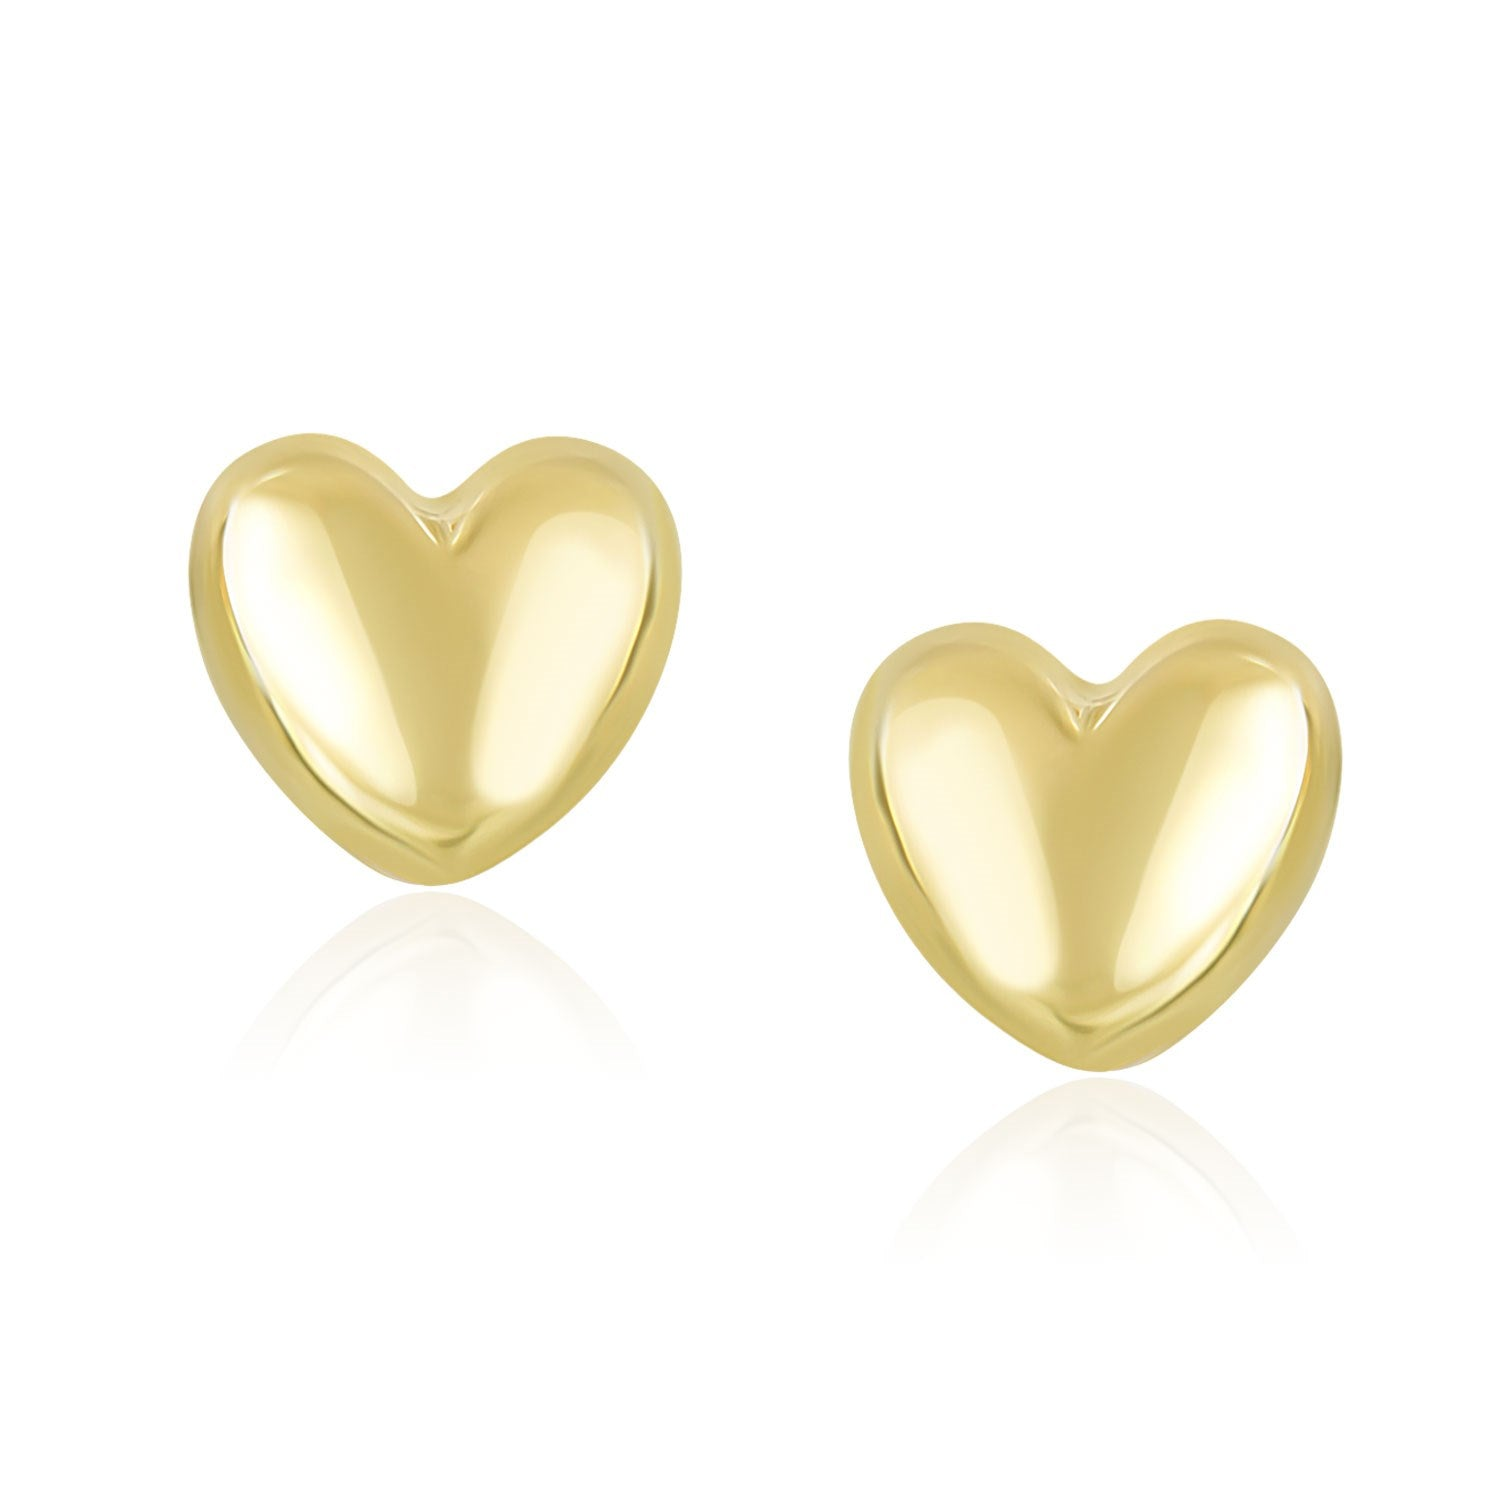 14K Yellow Gold Puffed Heart Shape Shiny Earrings